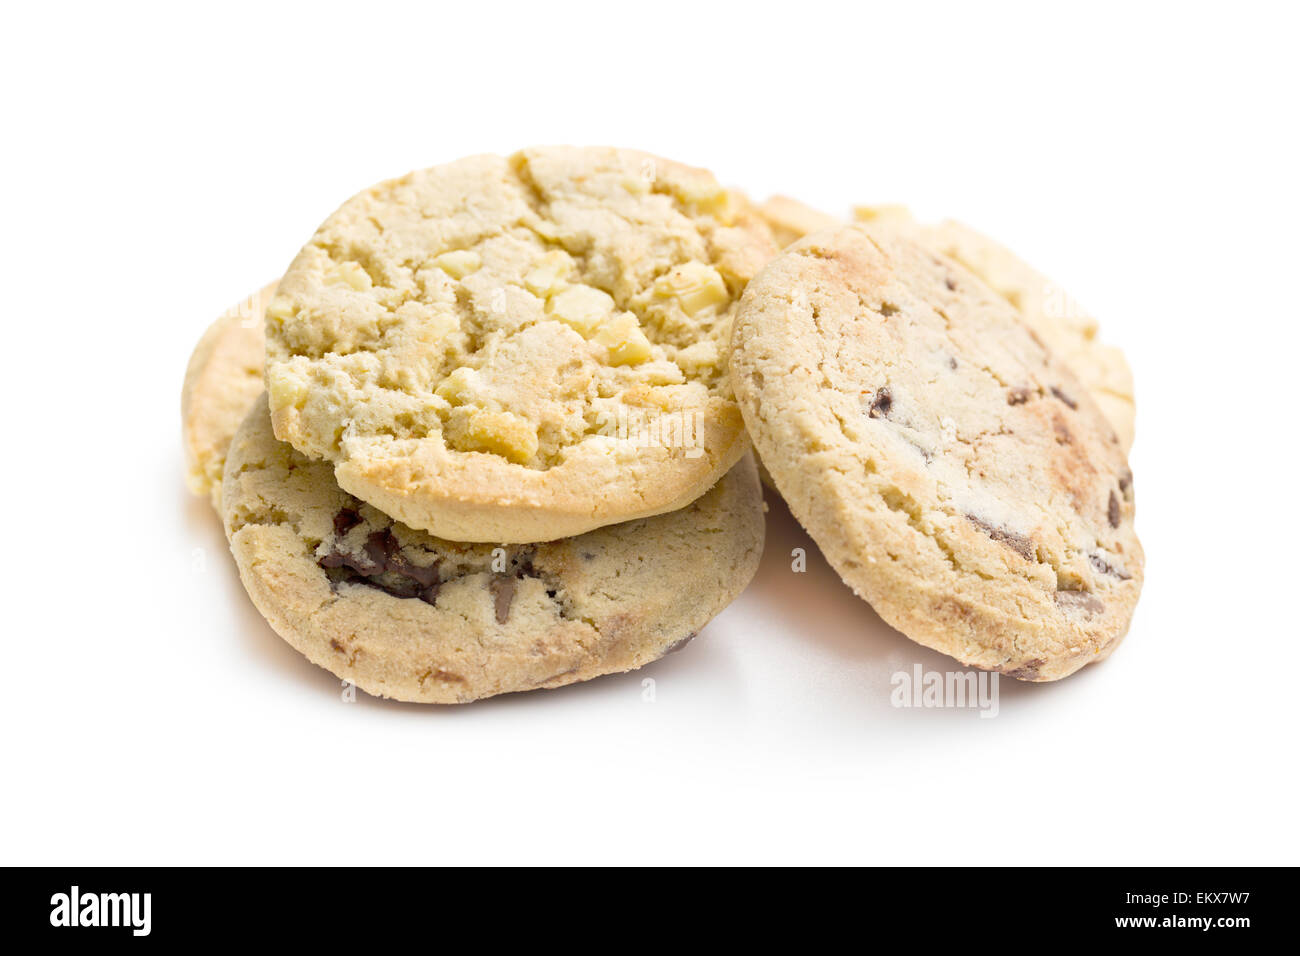 chocolate cookies on white background - Stock Image